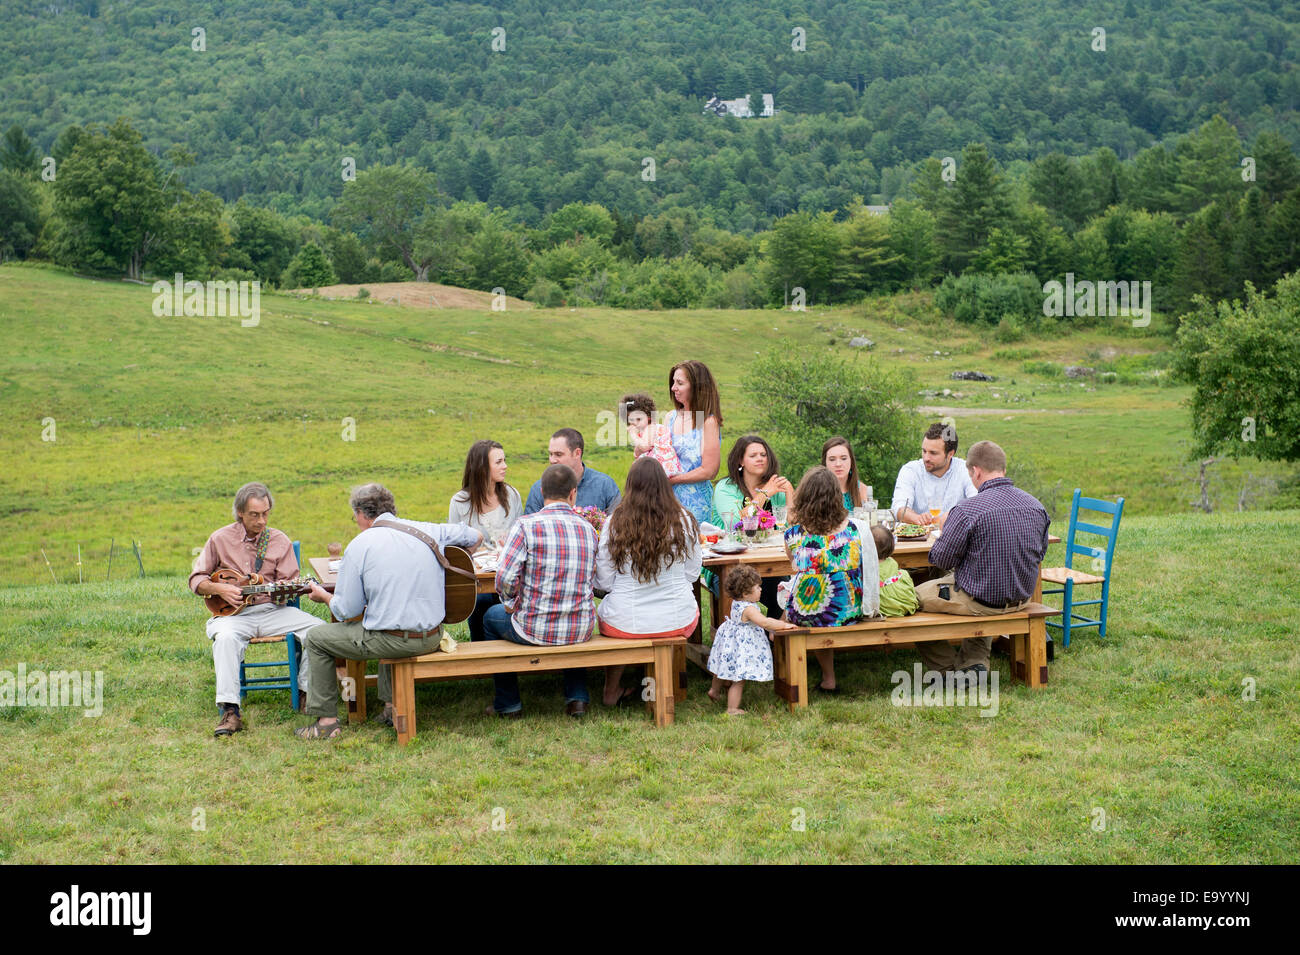 Family having meal together and socialising, outdoors - Stock Image